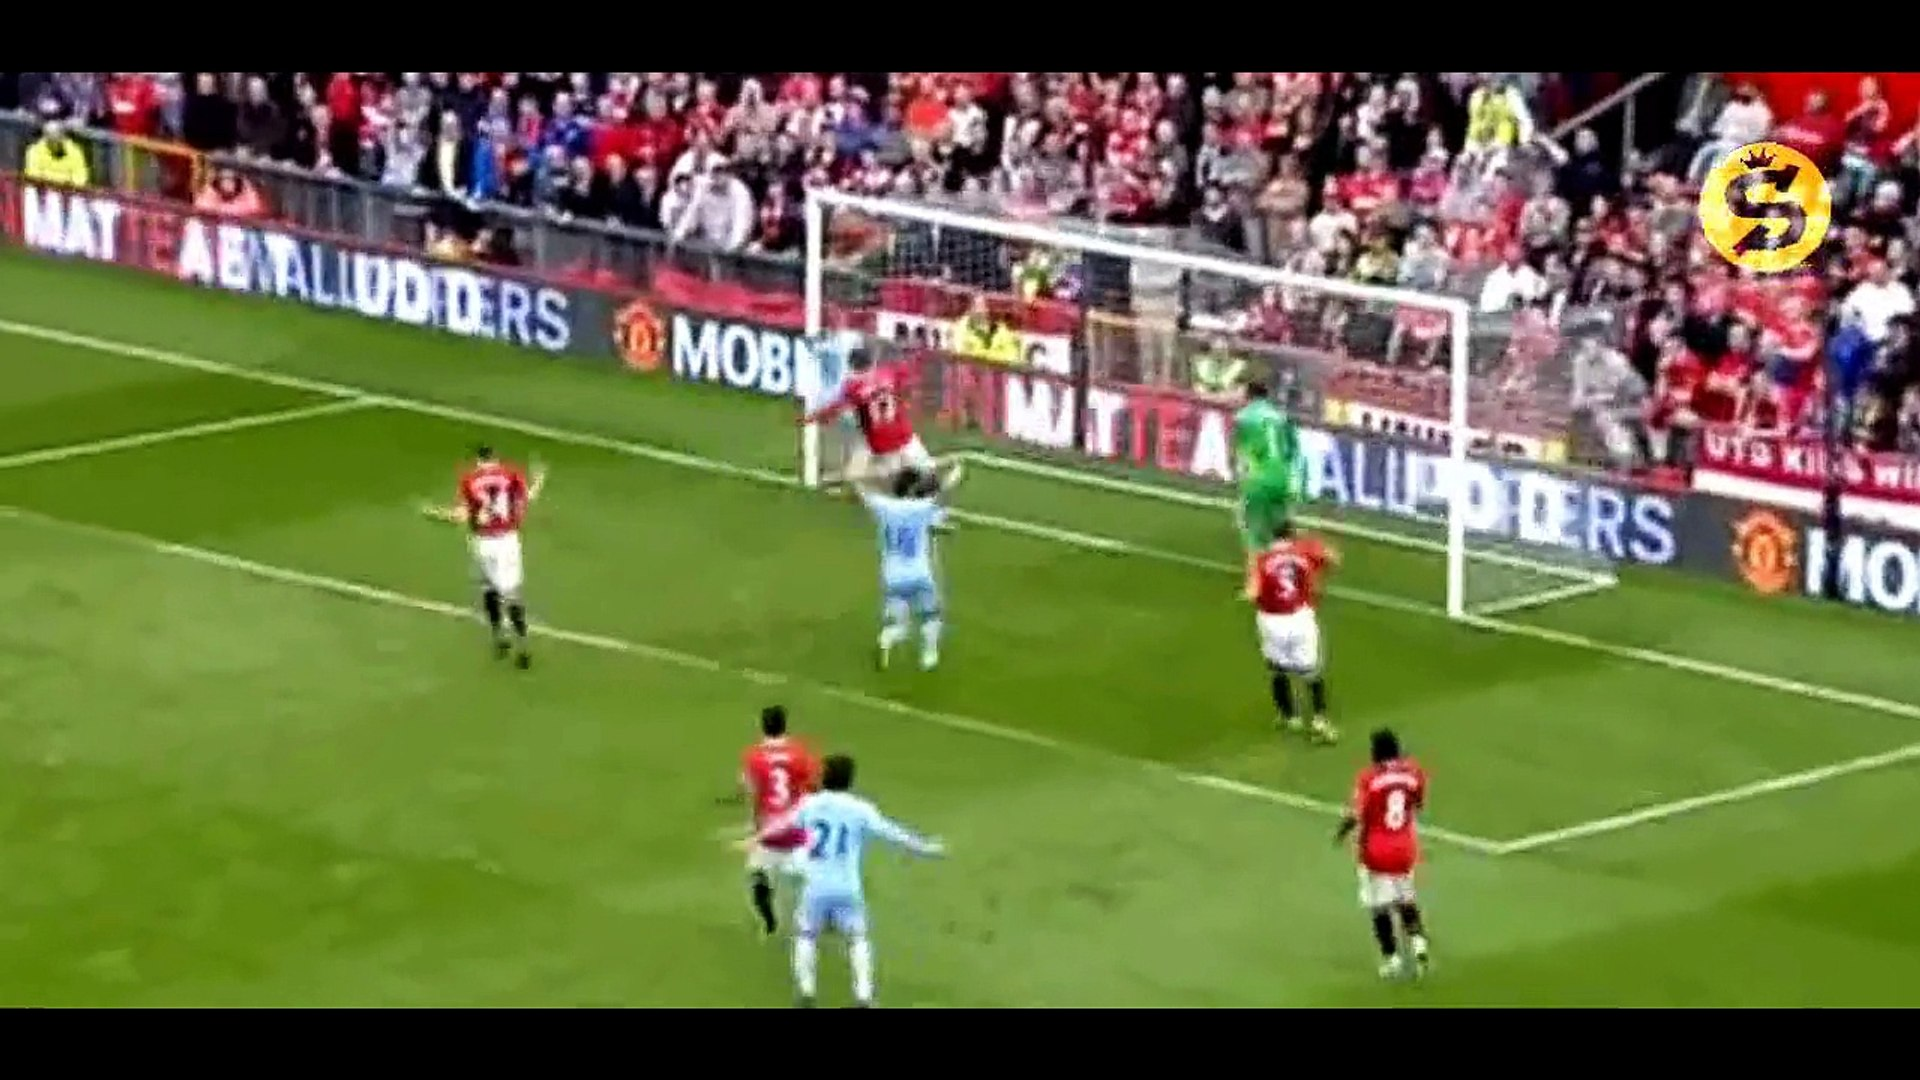 Memorable Match ► Manchester United 1 vs 6 Manchester City - 23 Oct 2011 | English Commentary